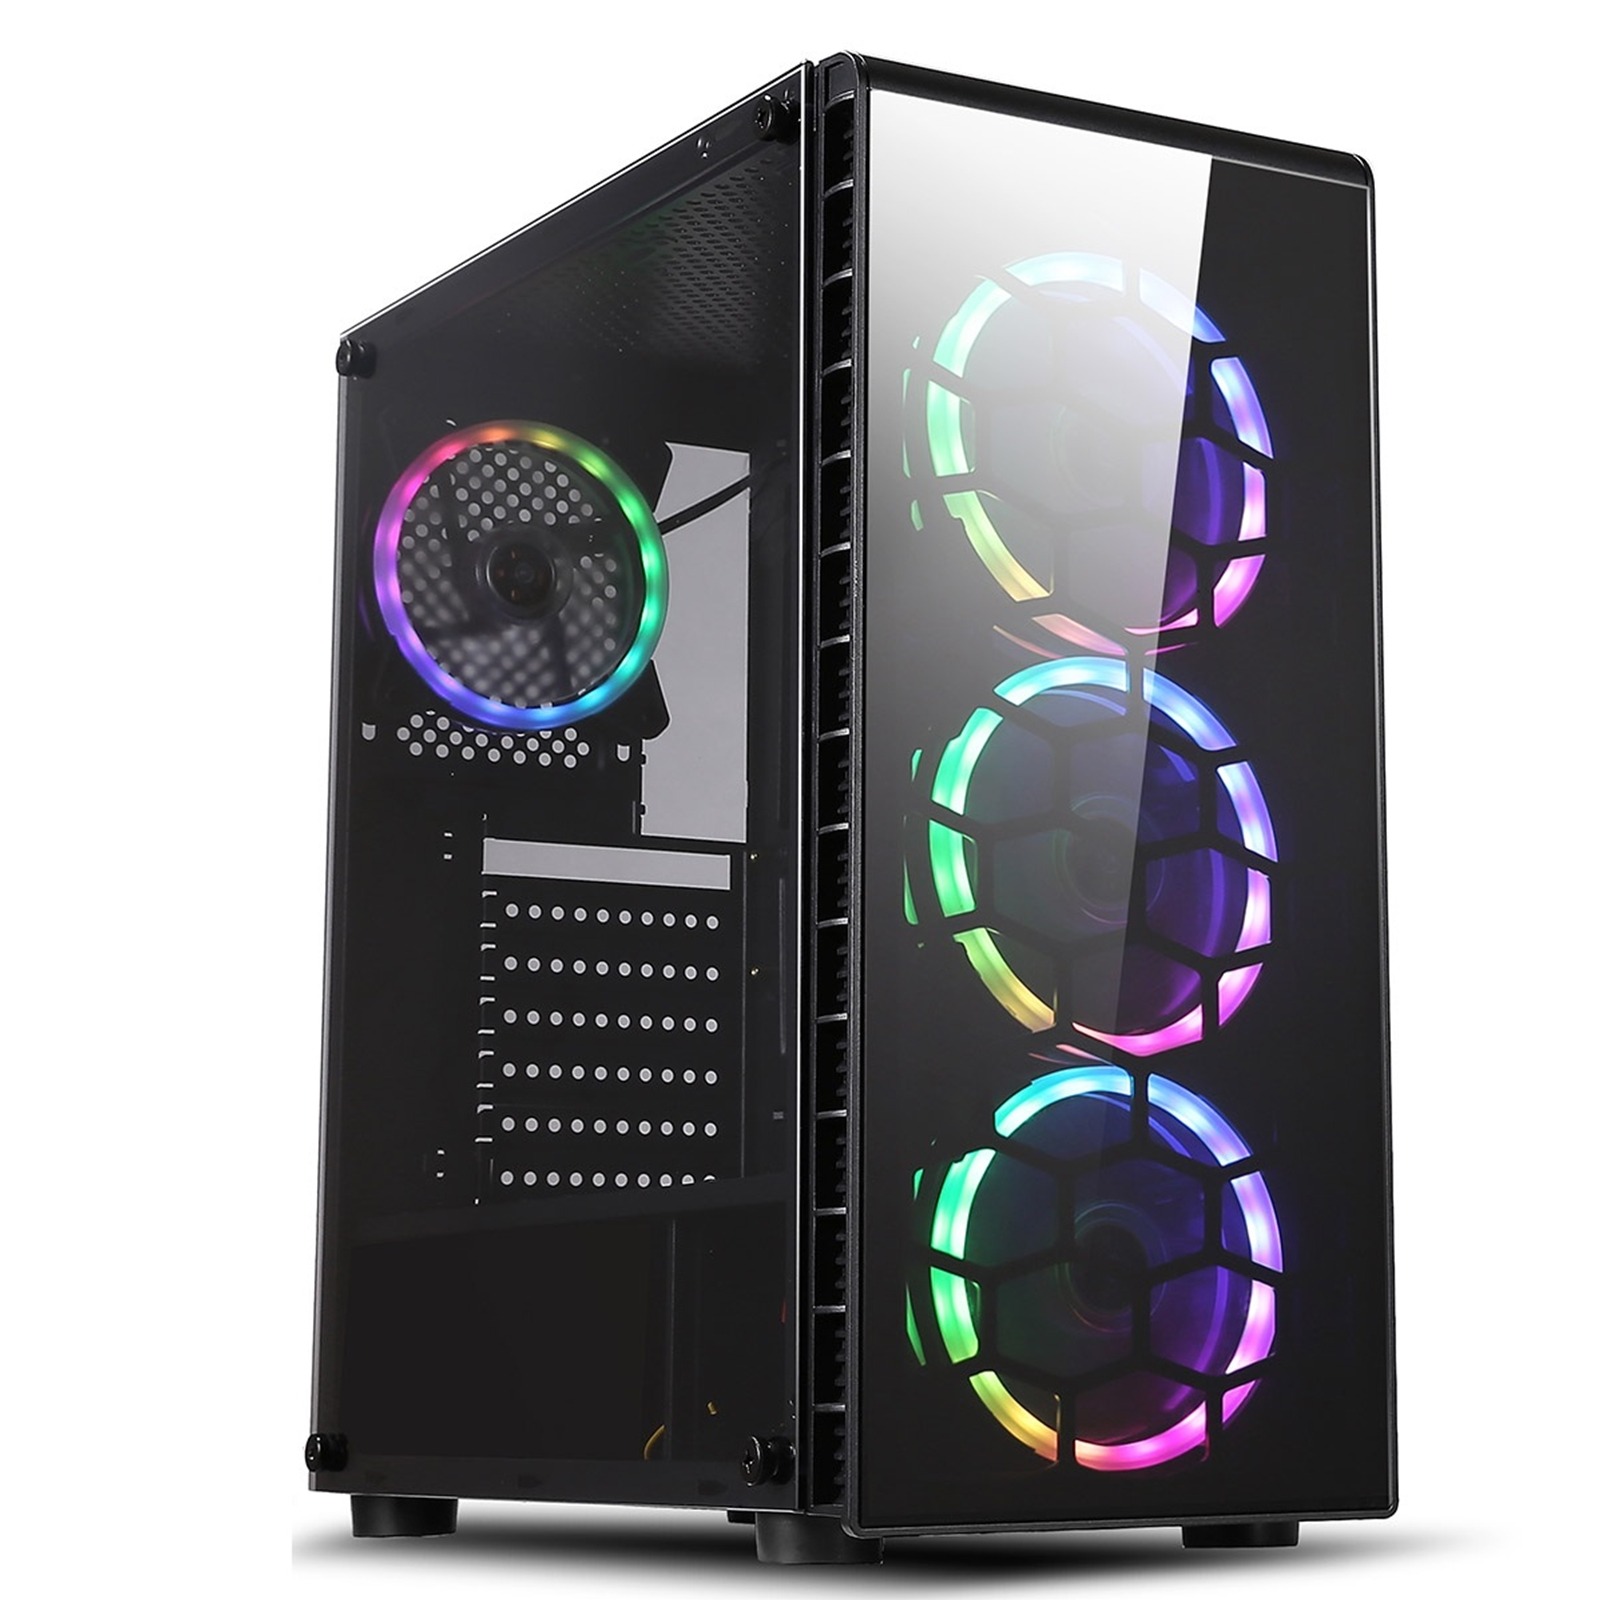 CiT Raider 1 x USB 3.0 / 2 x USB 2.0 Temp Glass Side/Front Window Panels Black Case  RGB LED Fans